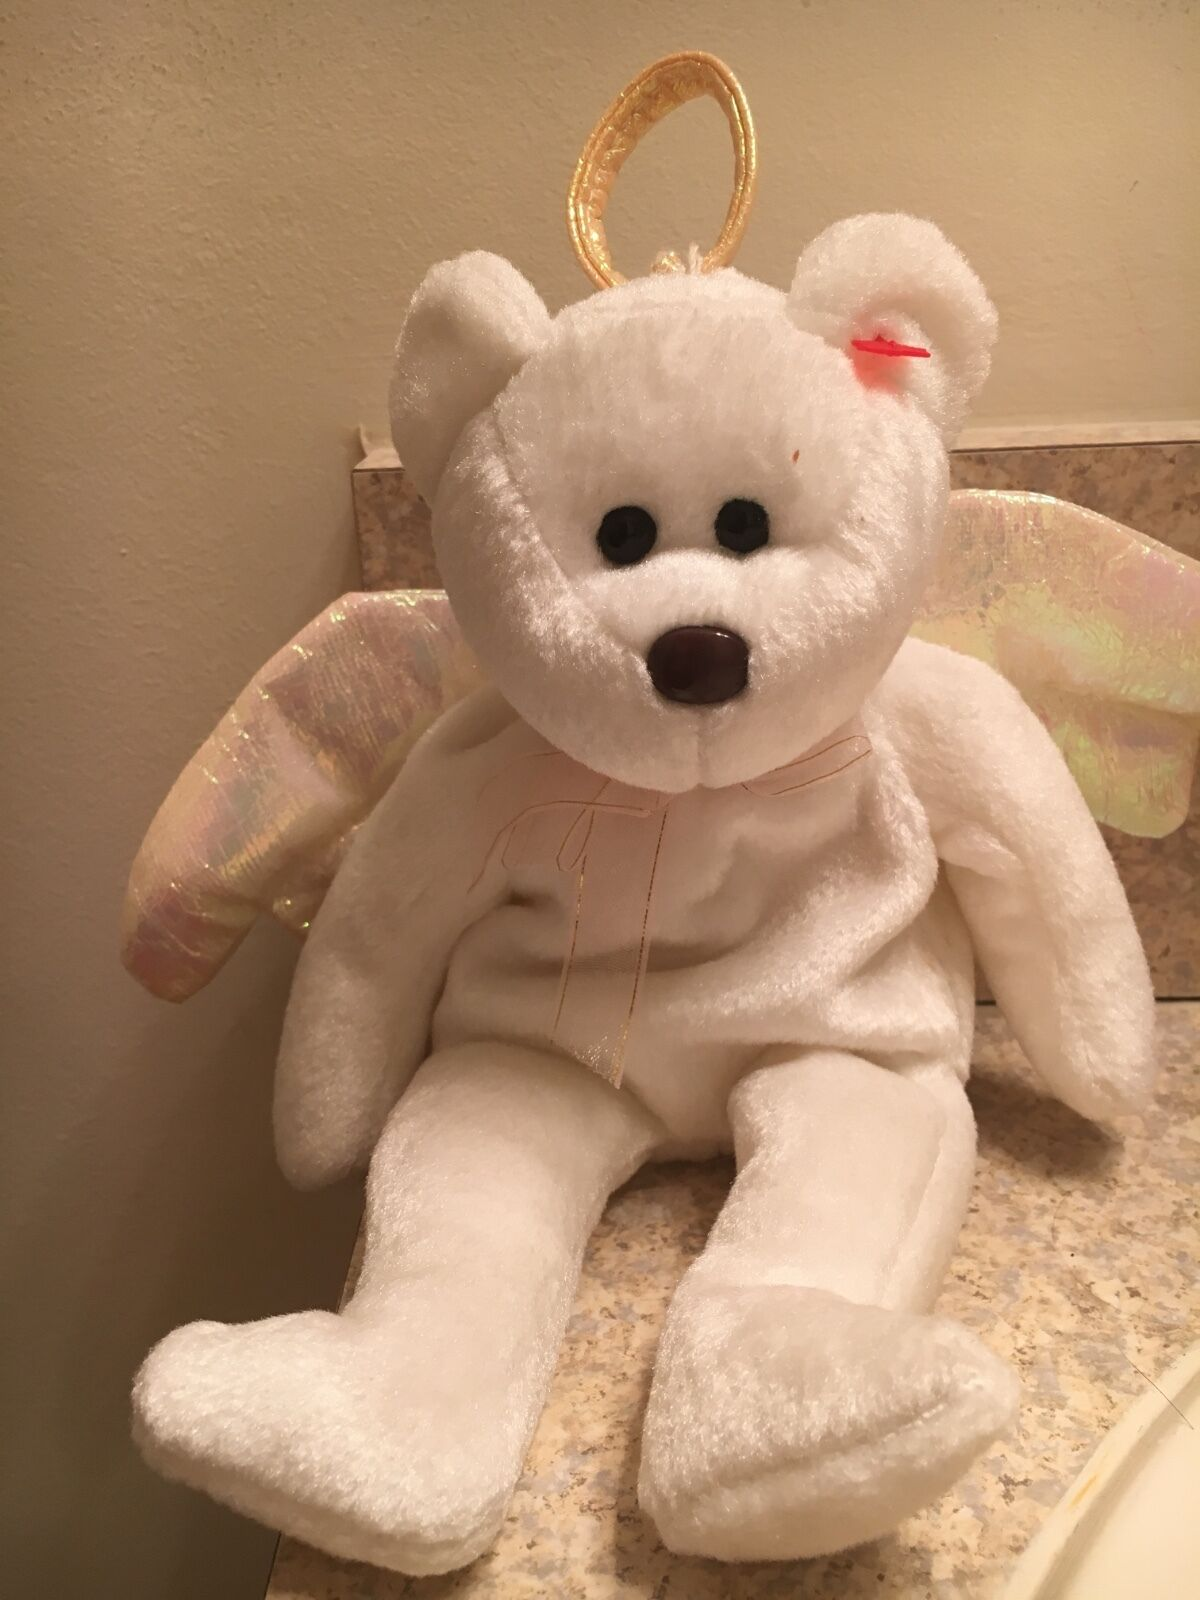 Halo beanie baby 1998 1998 1998 brown nose tush tag stamped 466. Hang tag missing fad5bb